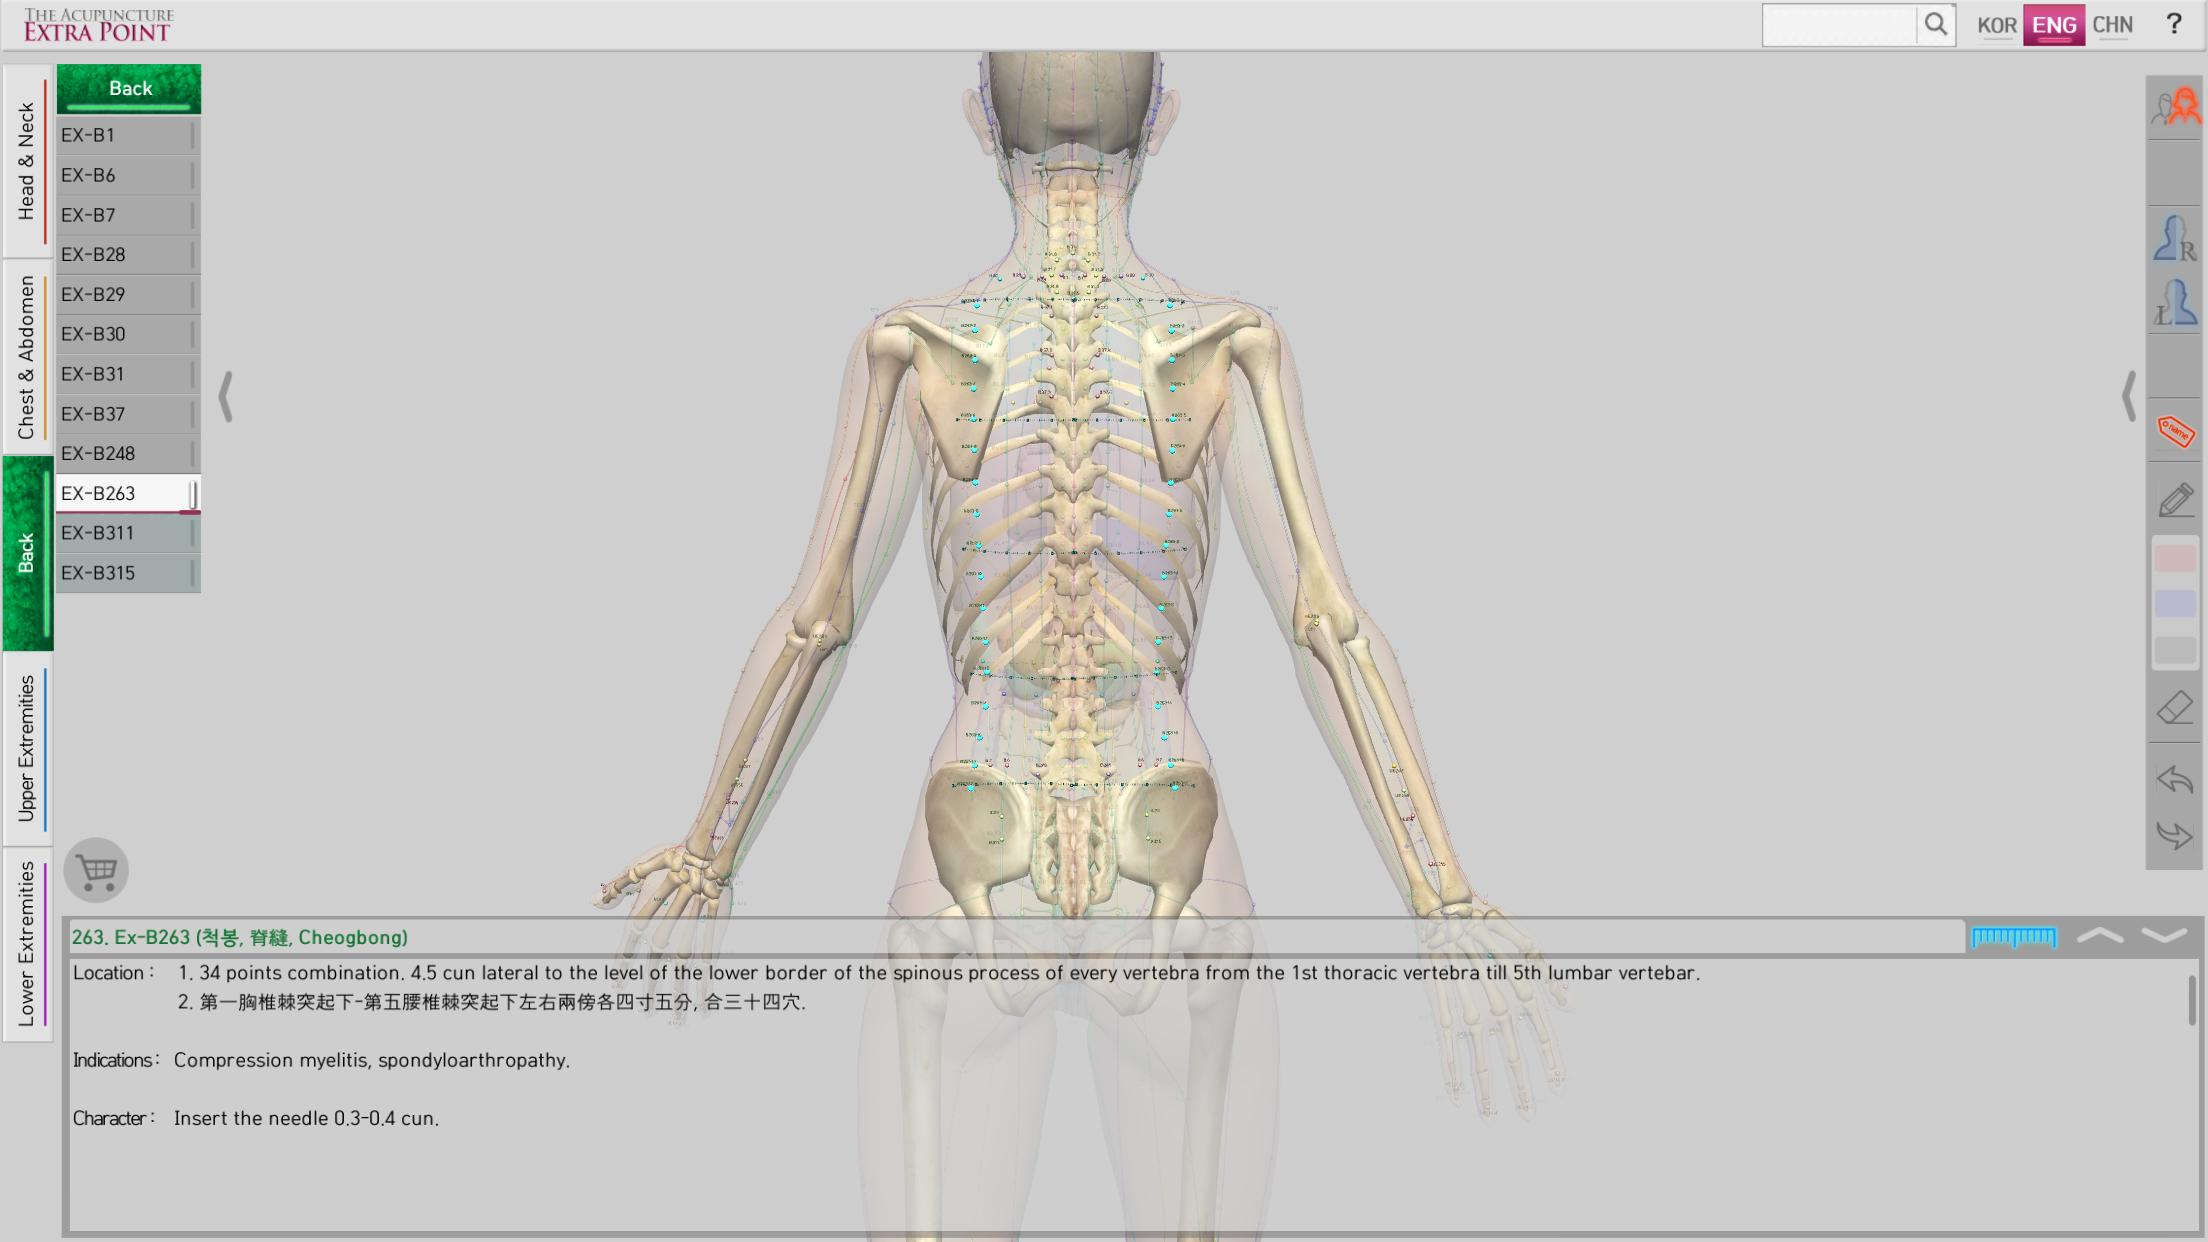 The Acupuncture of Extra Point Lite for Android - APK Download